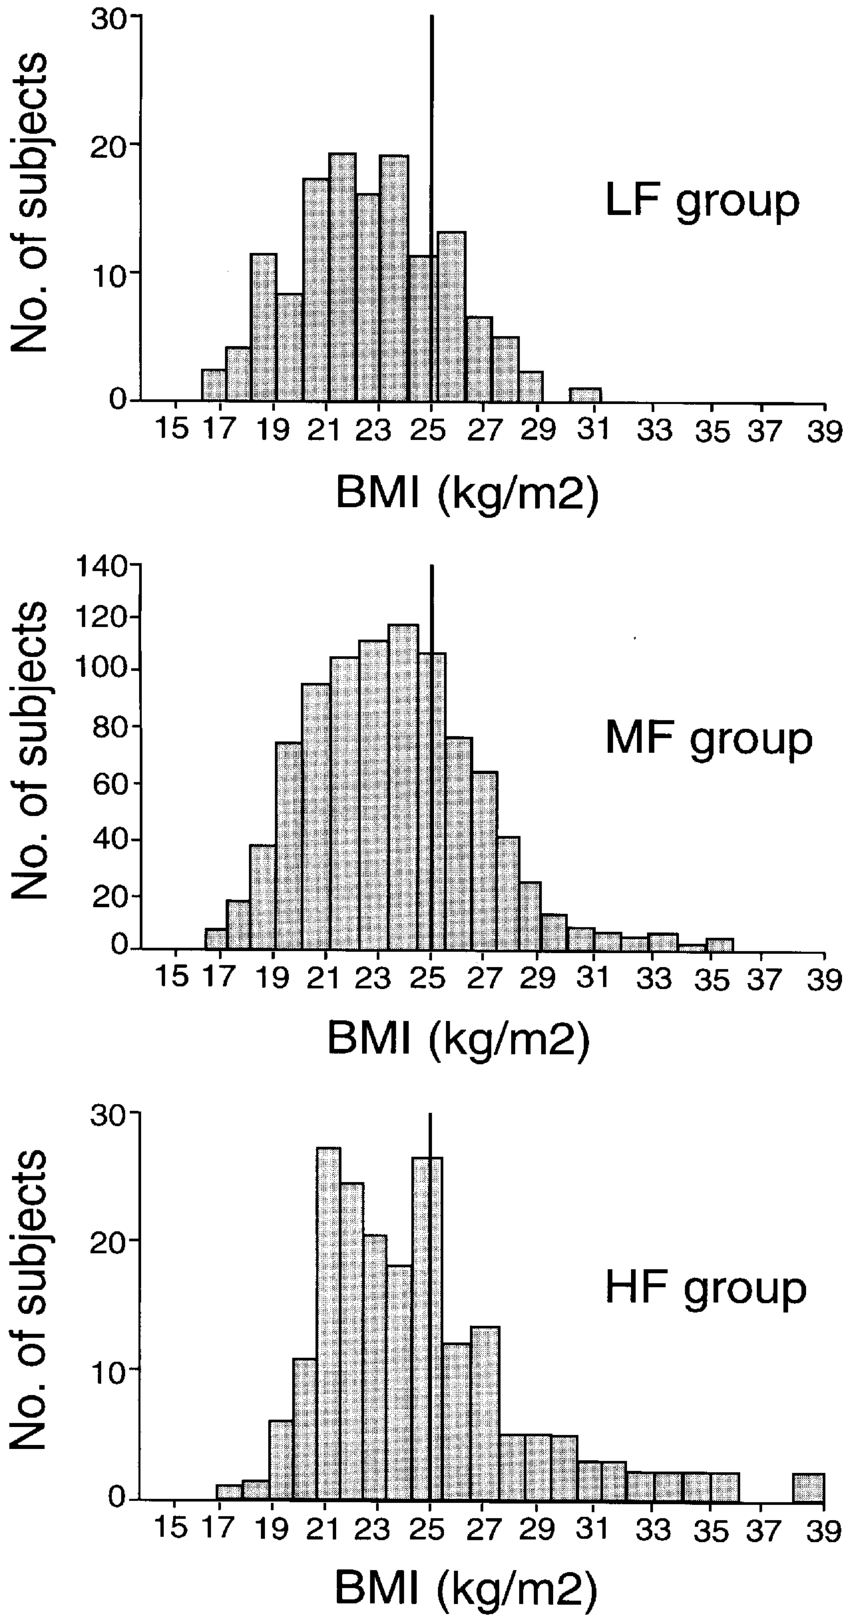 Mf Group Frequency Distributions Of Body Mass Index Bmi Among Low Fat